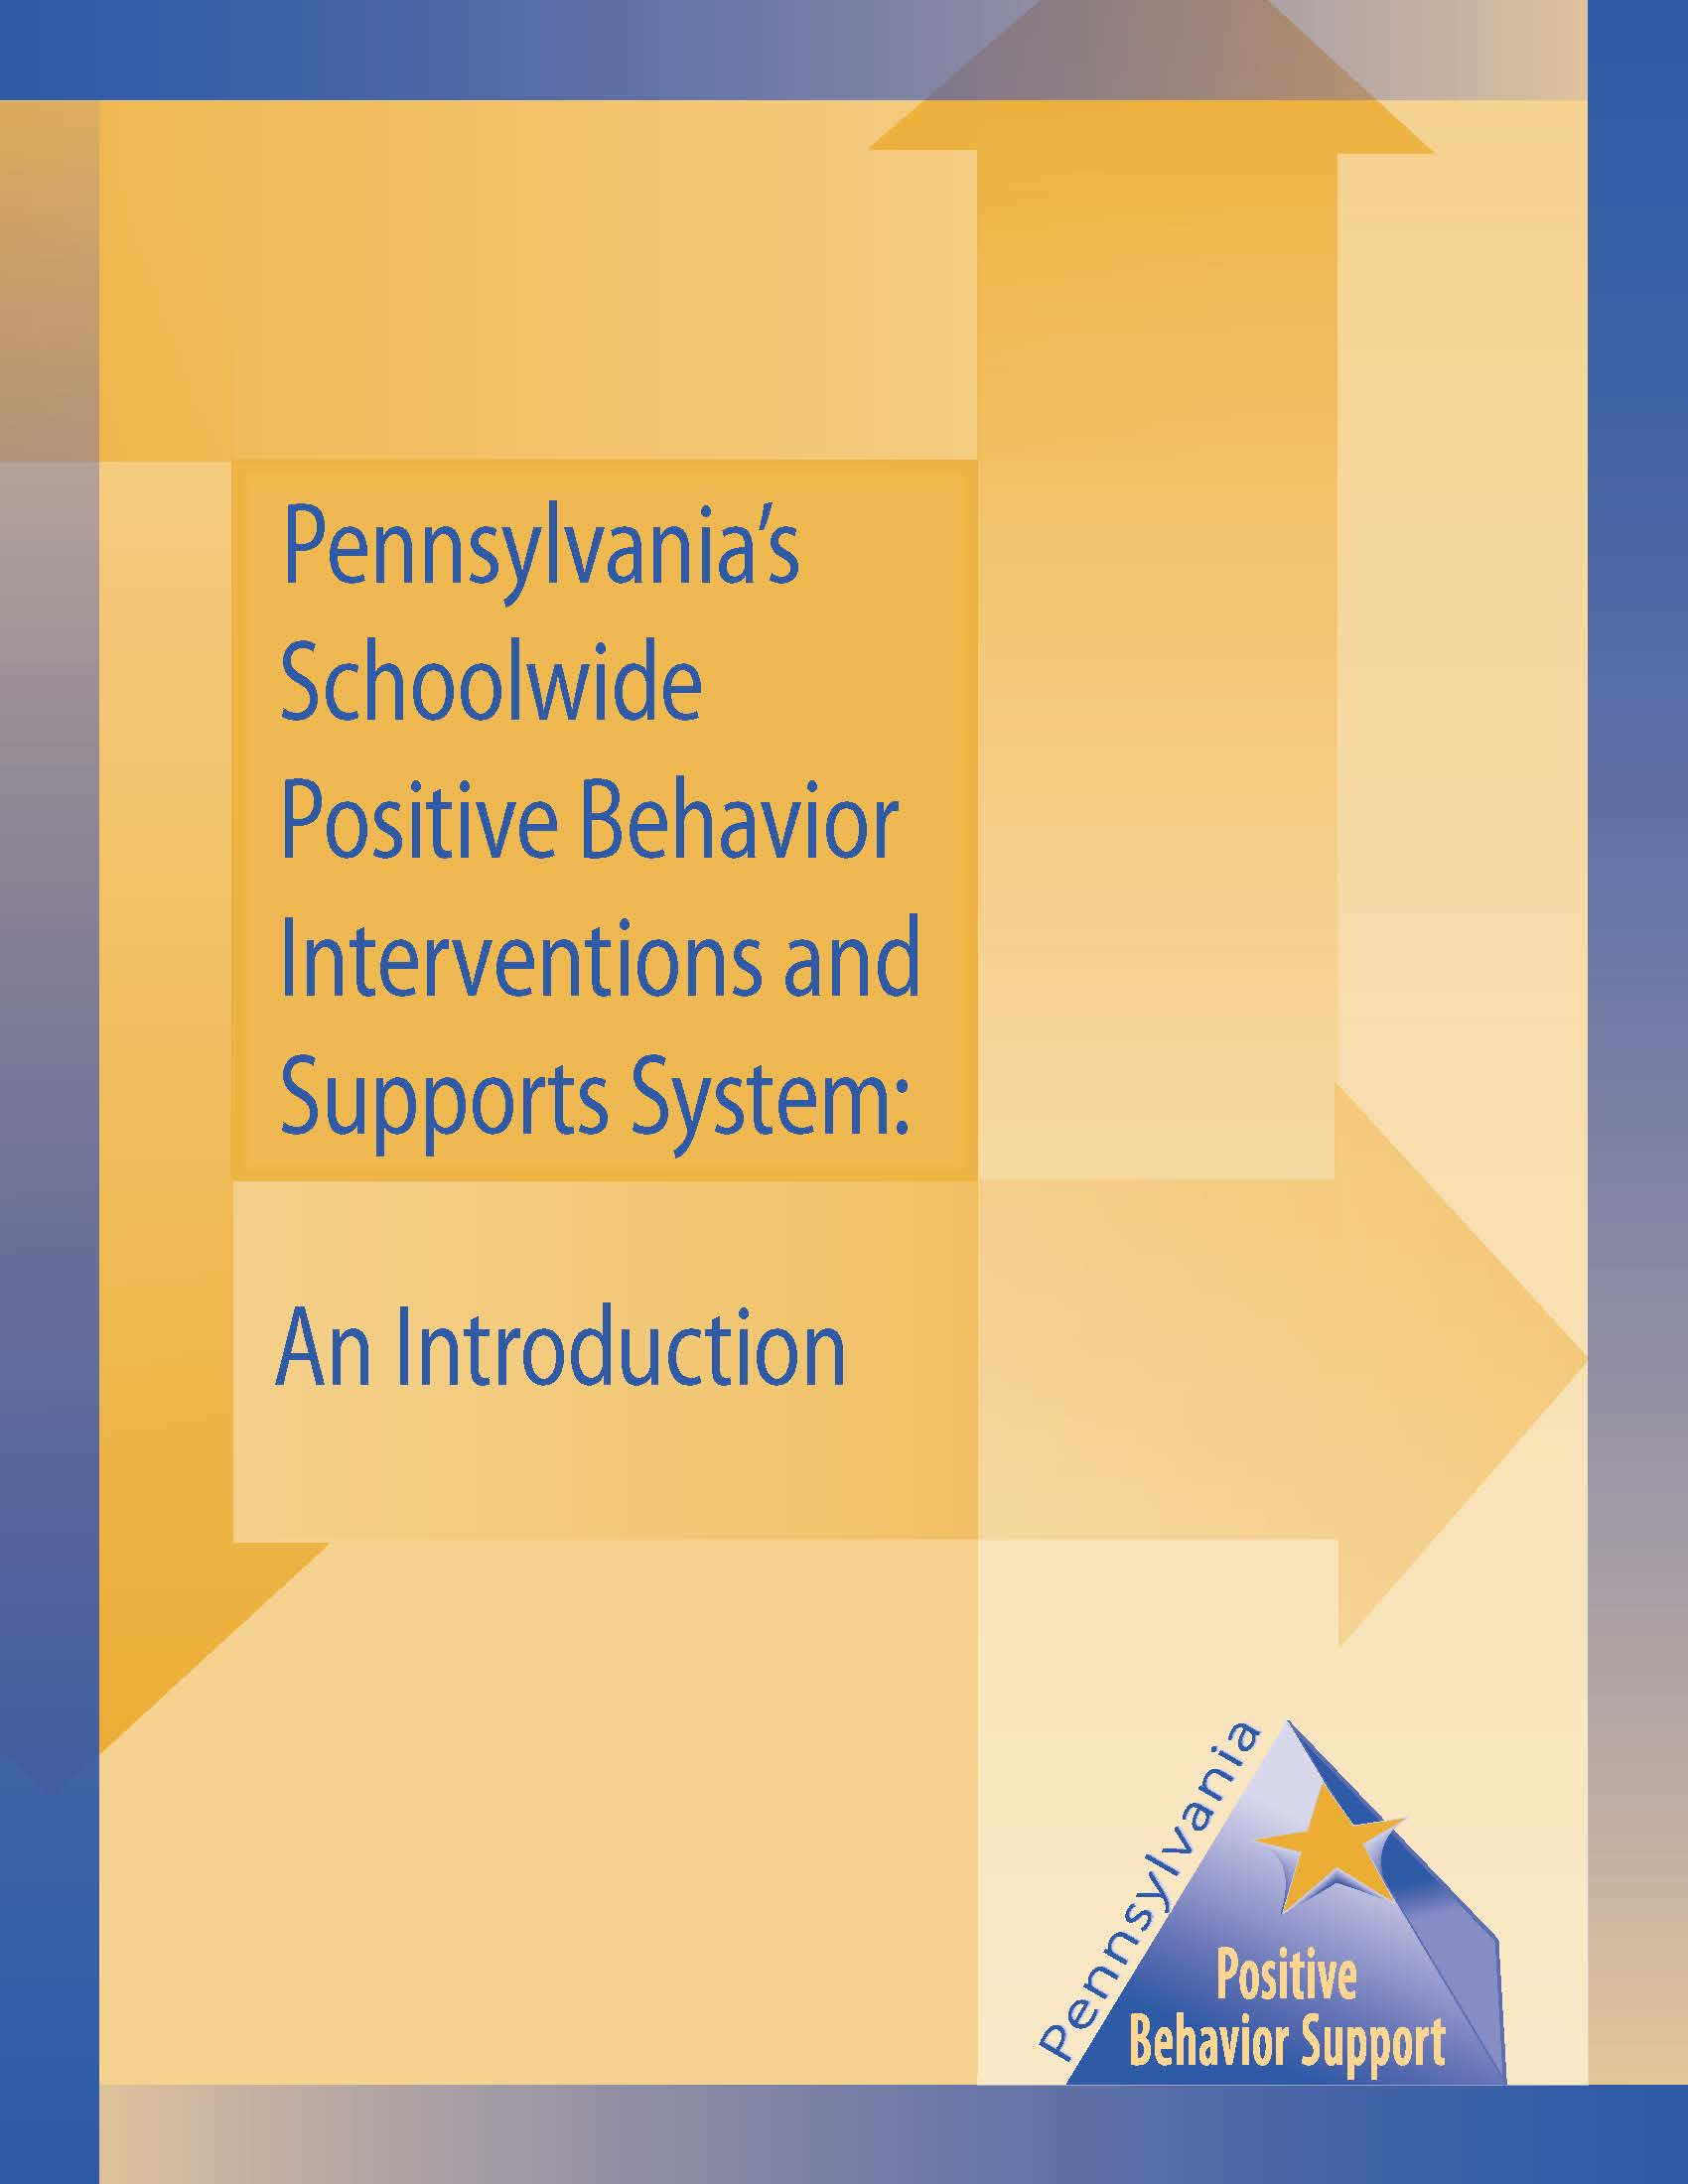 Pennsylvania's Schoolwide Positive Behavior Interventions and Supports System: An Introduction